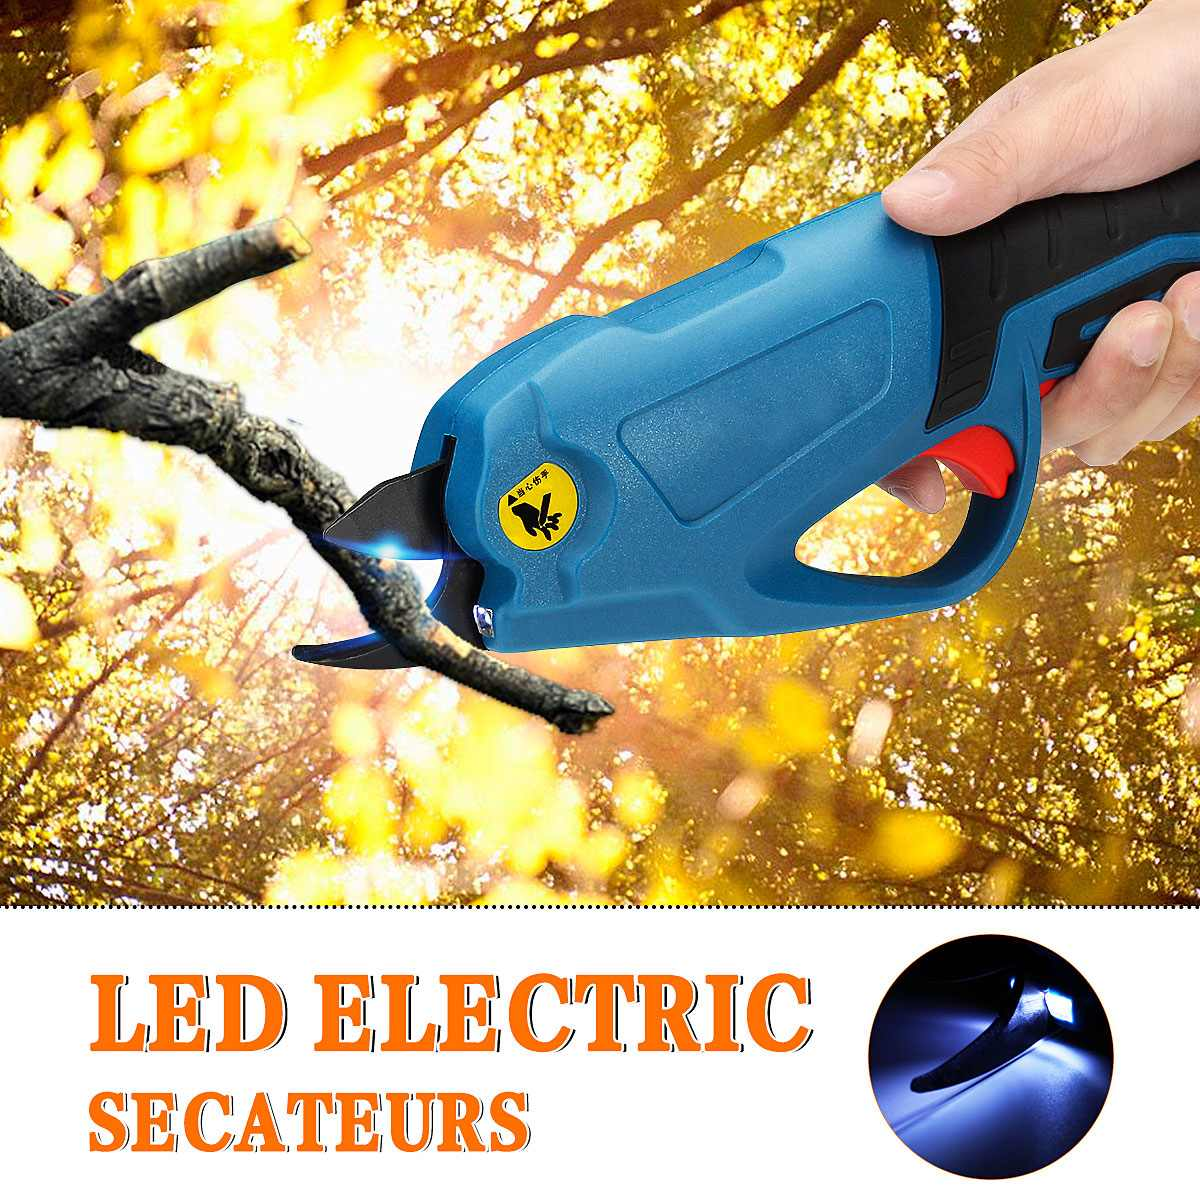 4V Cordless Electric Rechargeable Lithium Pruning Shears Secateur Branch Cutter Electric Fruit Pruning Tool Garden Pruner